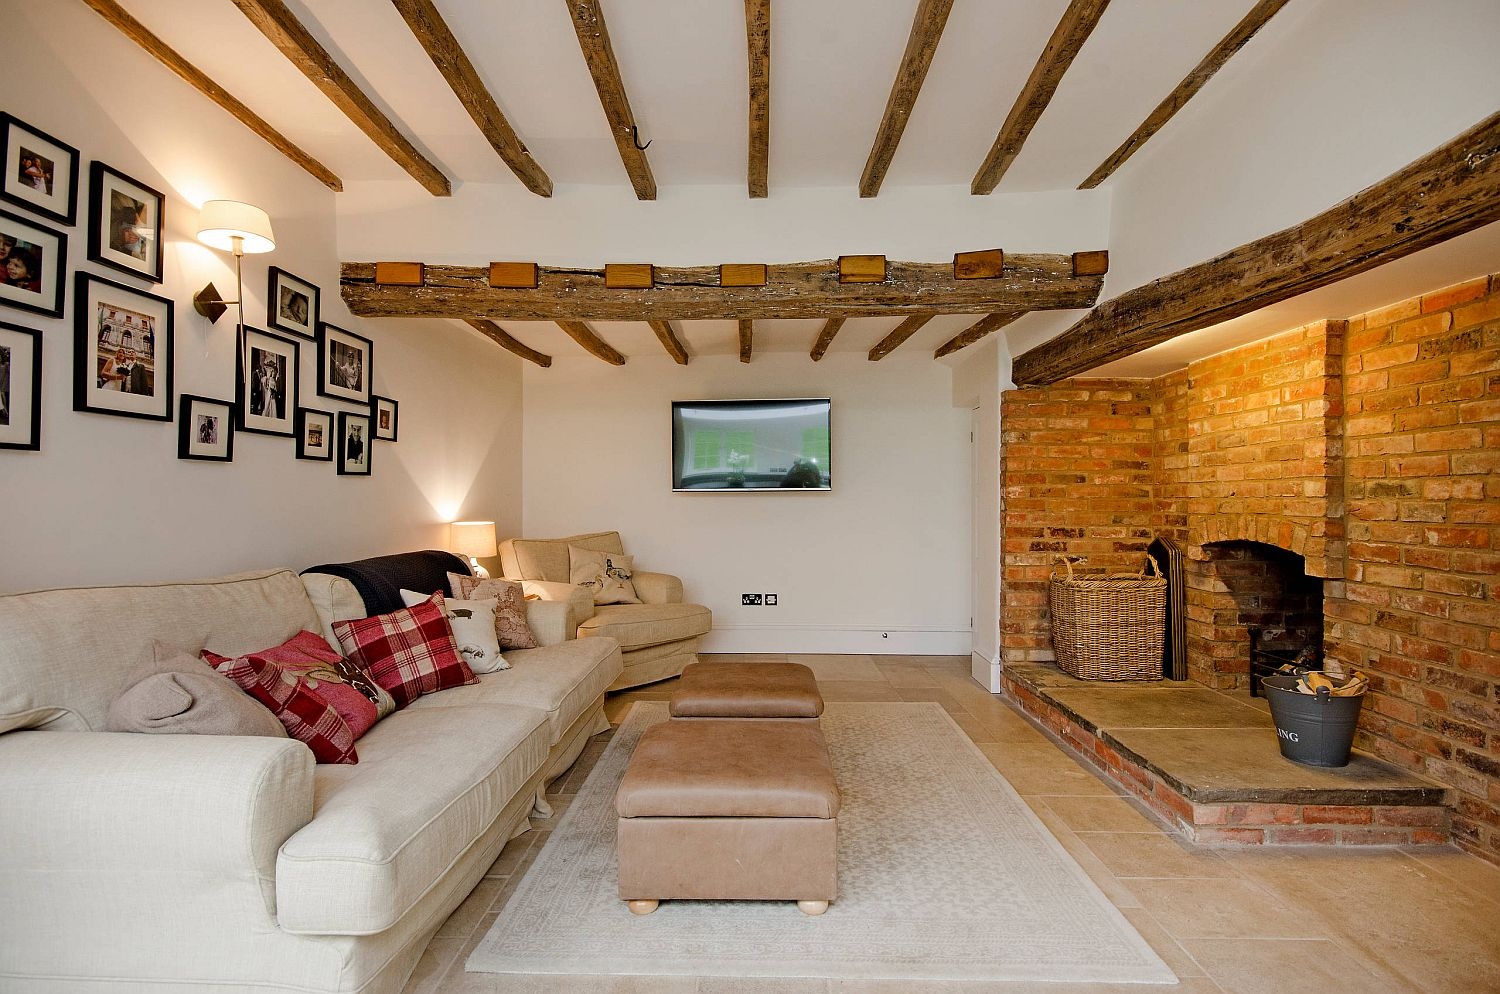 Use the wooden ceiling beams as smart decorative features